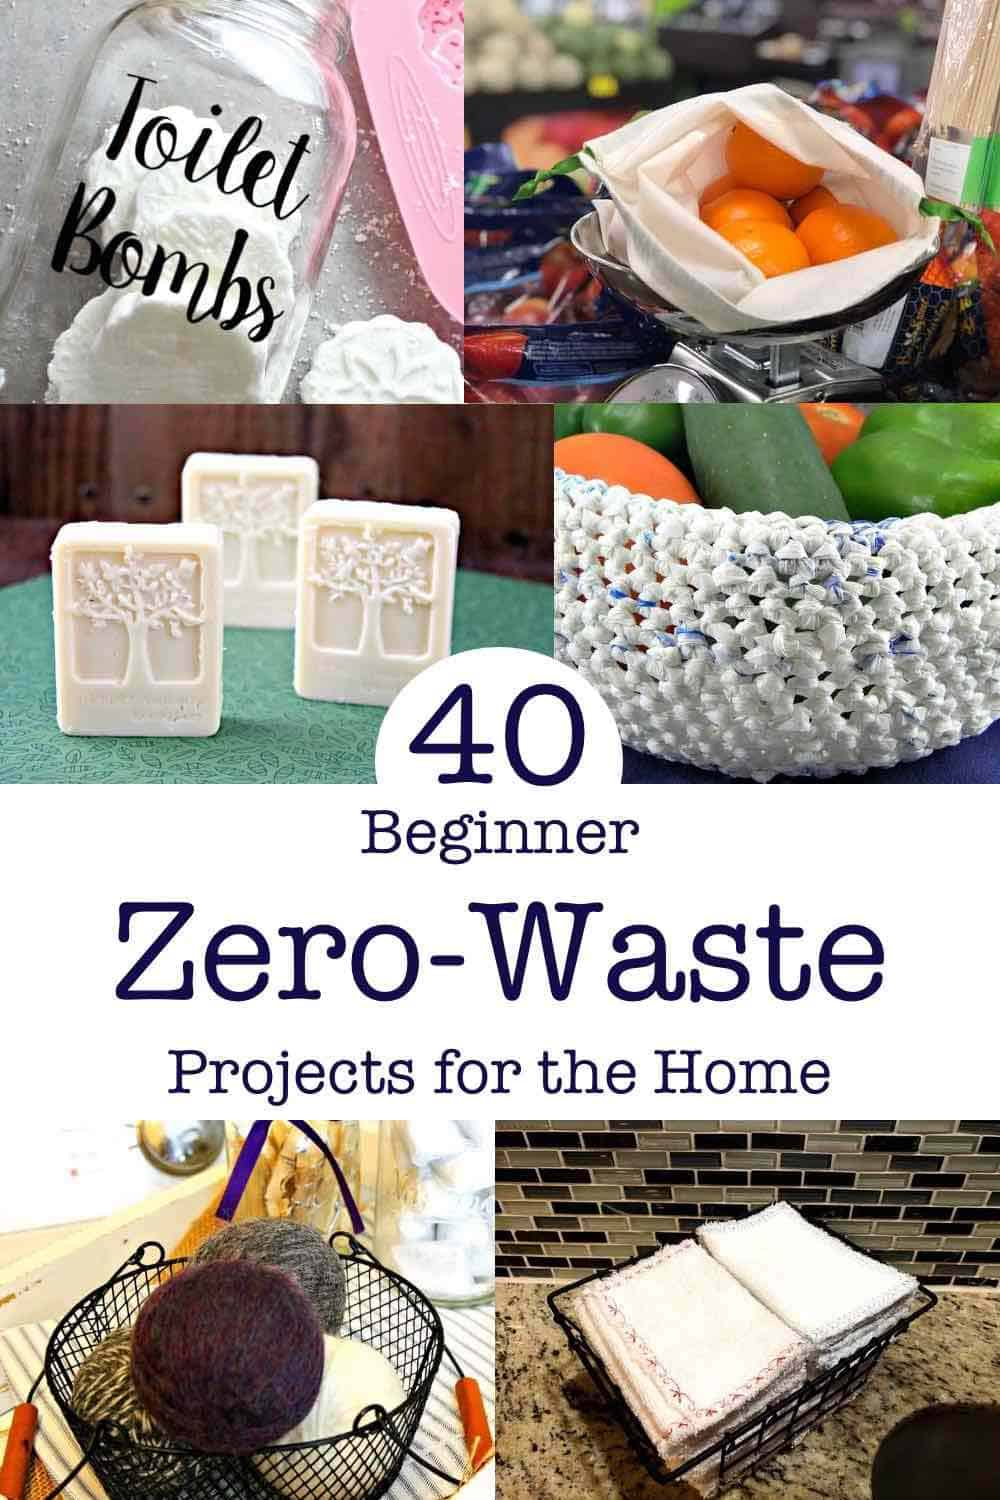 40 Beginner Zero Waste Projects for the Home